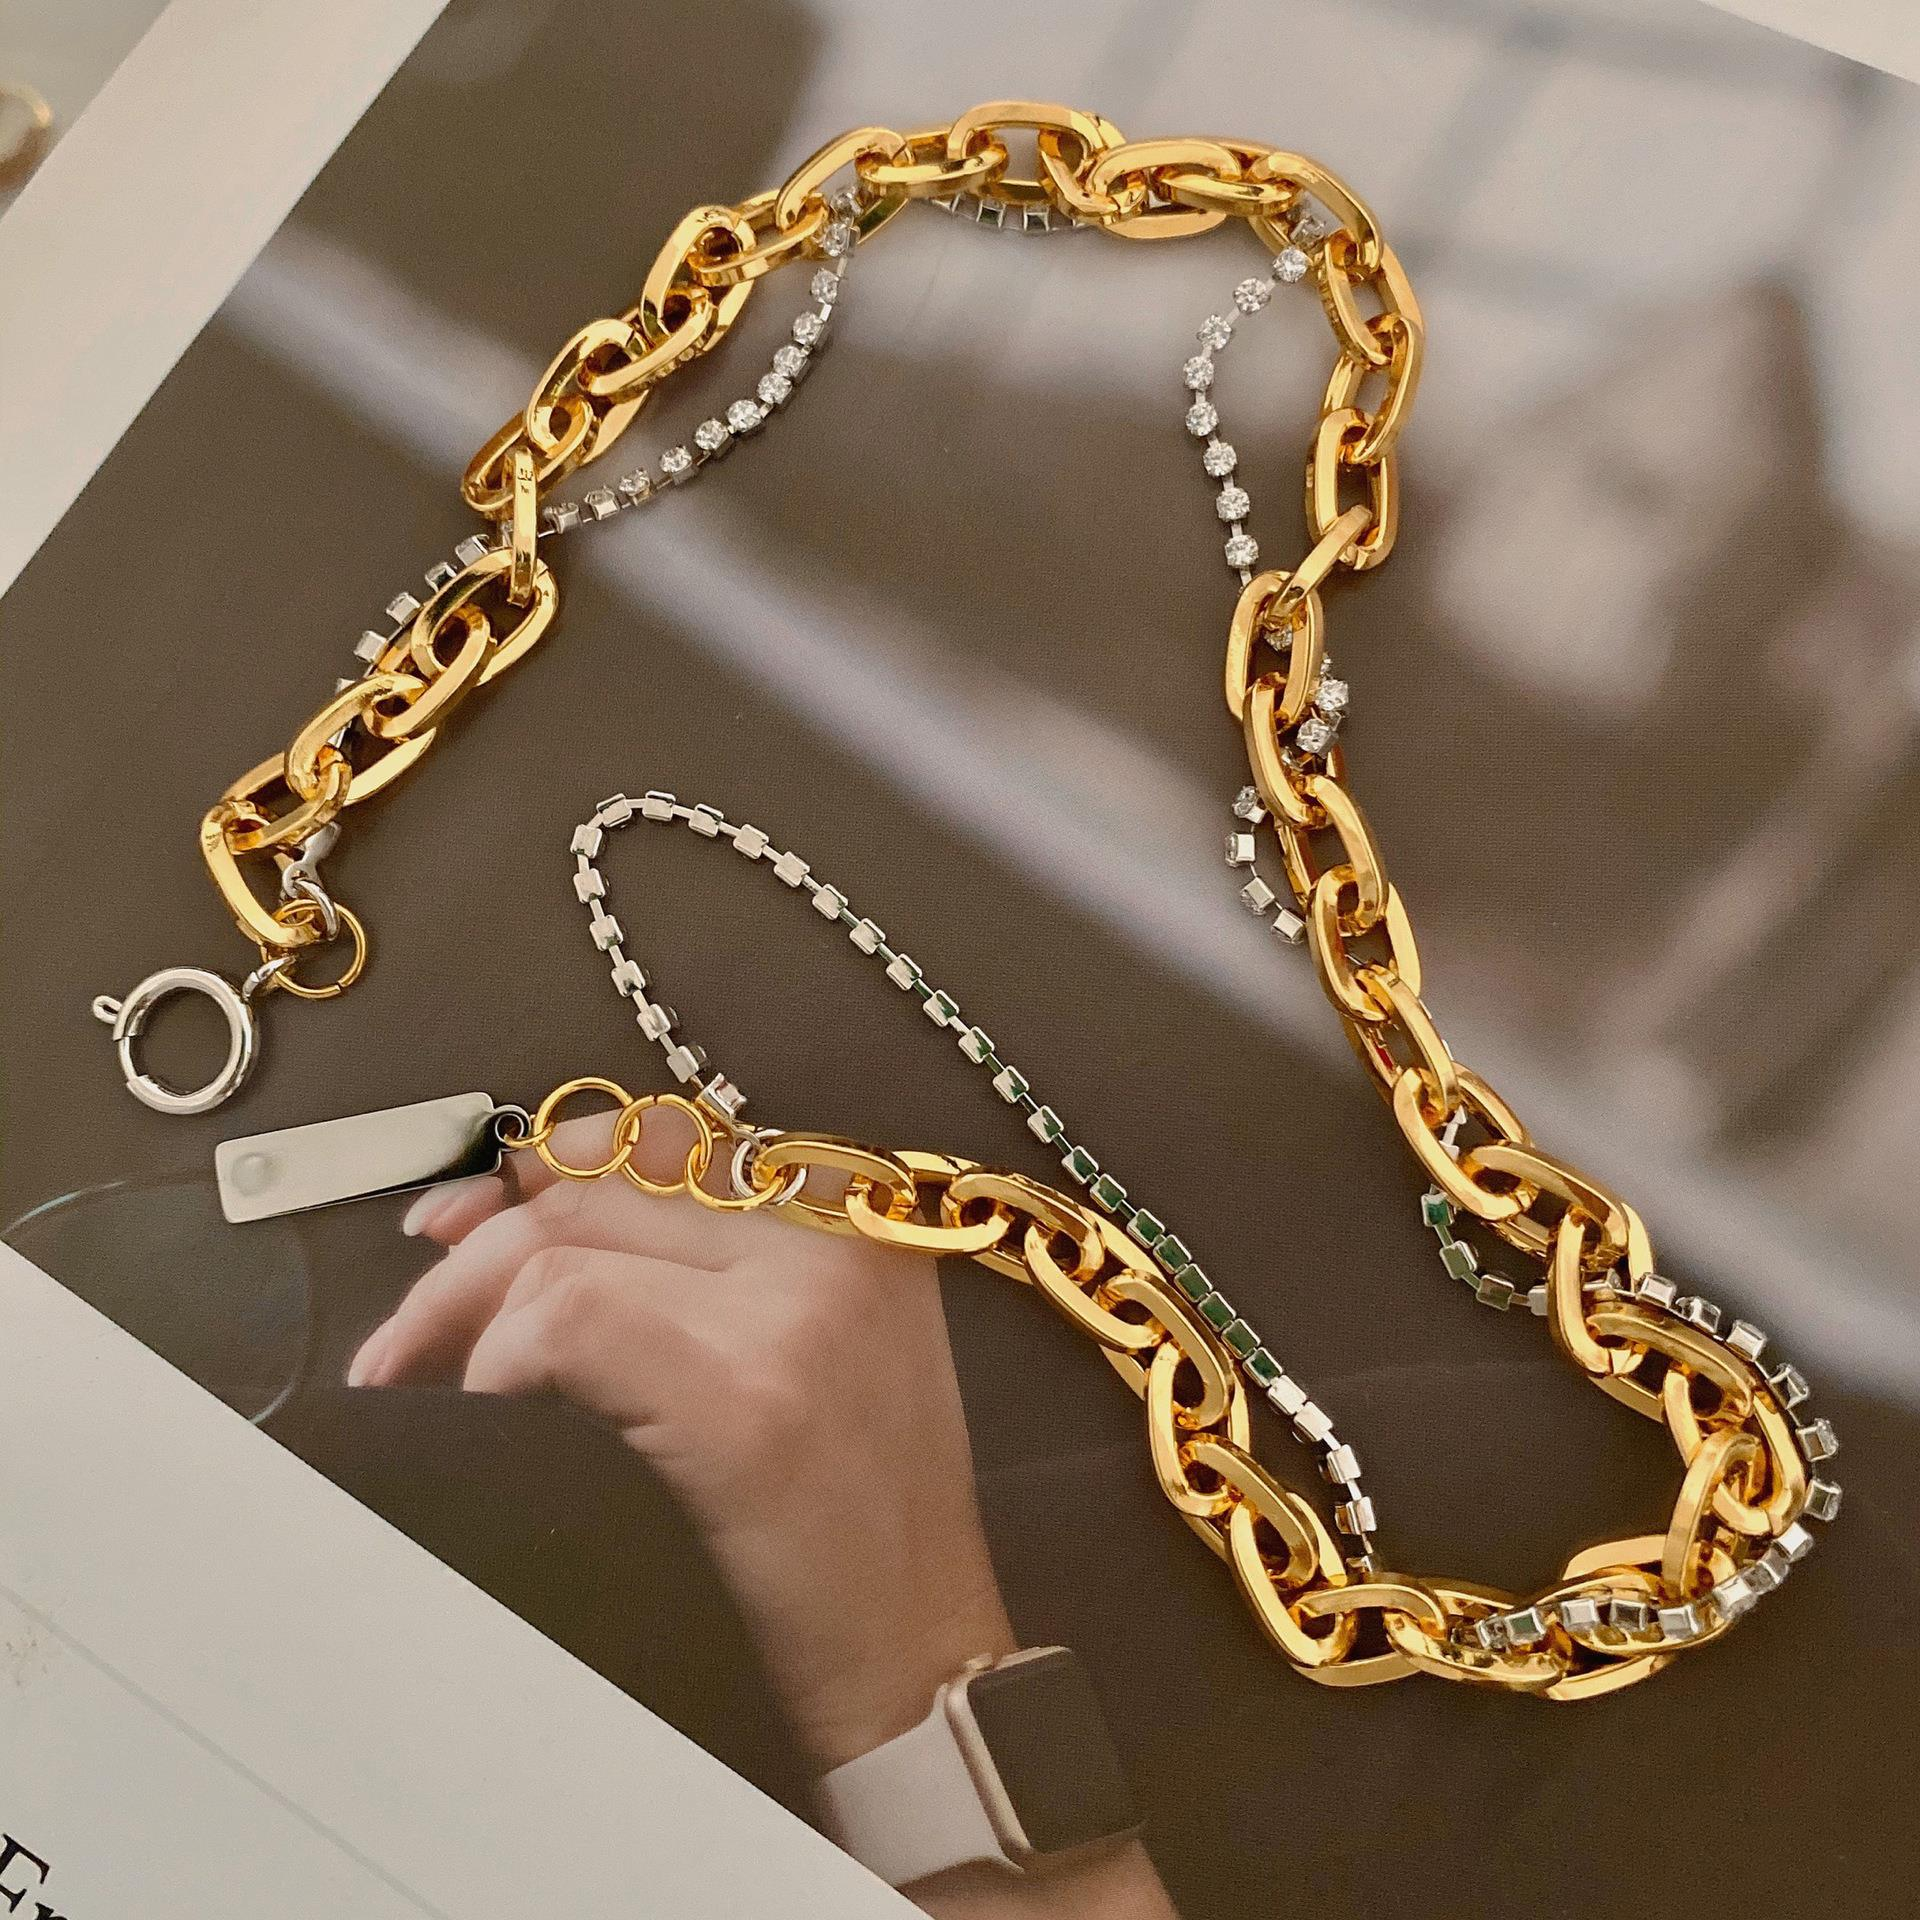 HOT SALE Stainless Steel Necklace Gold Plated New Design Necklaces Hip Hop Necklace jewelry Dylam jewelry